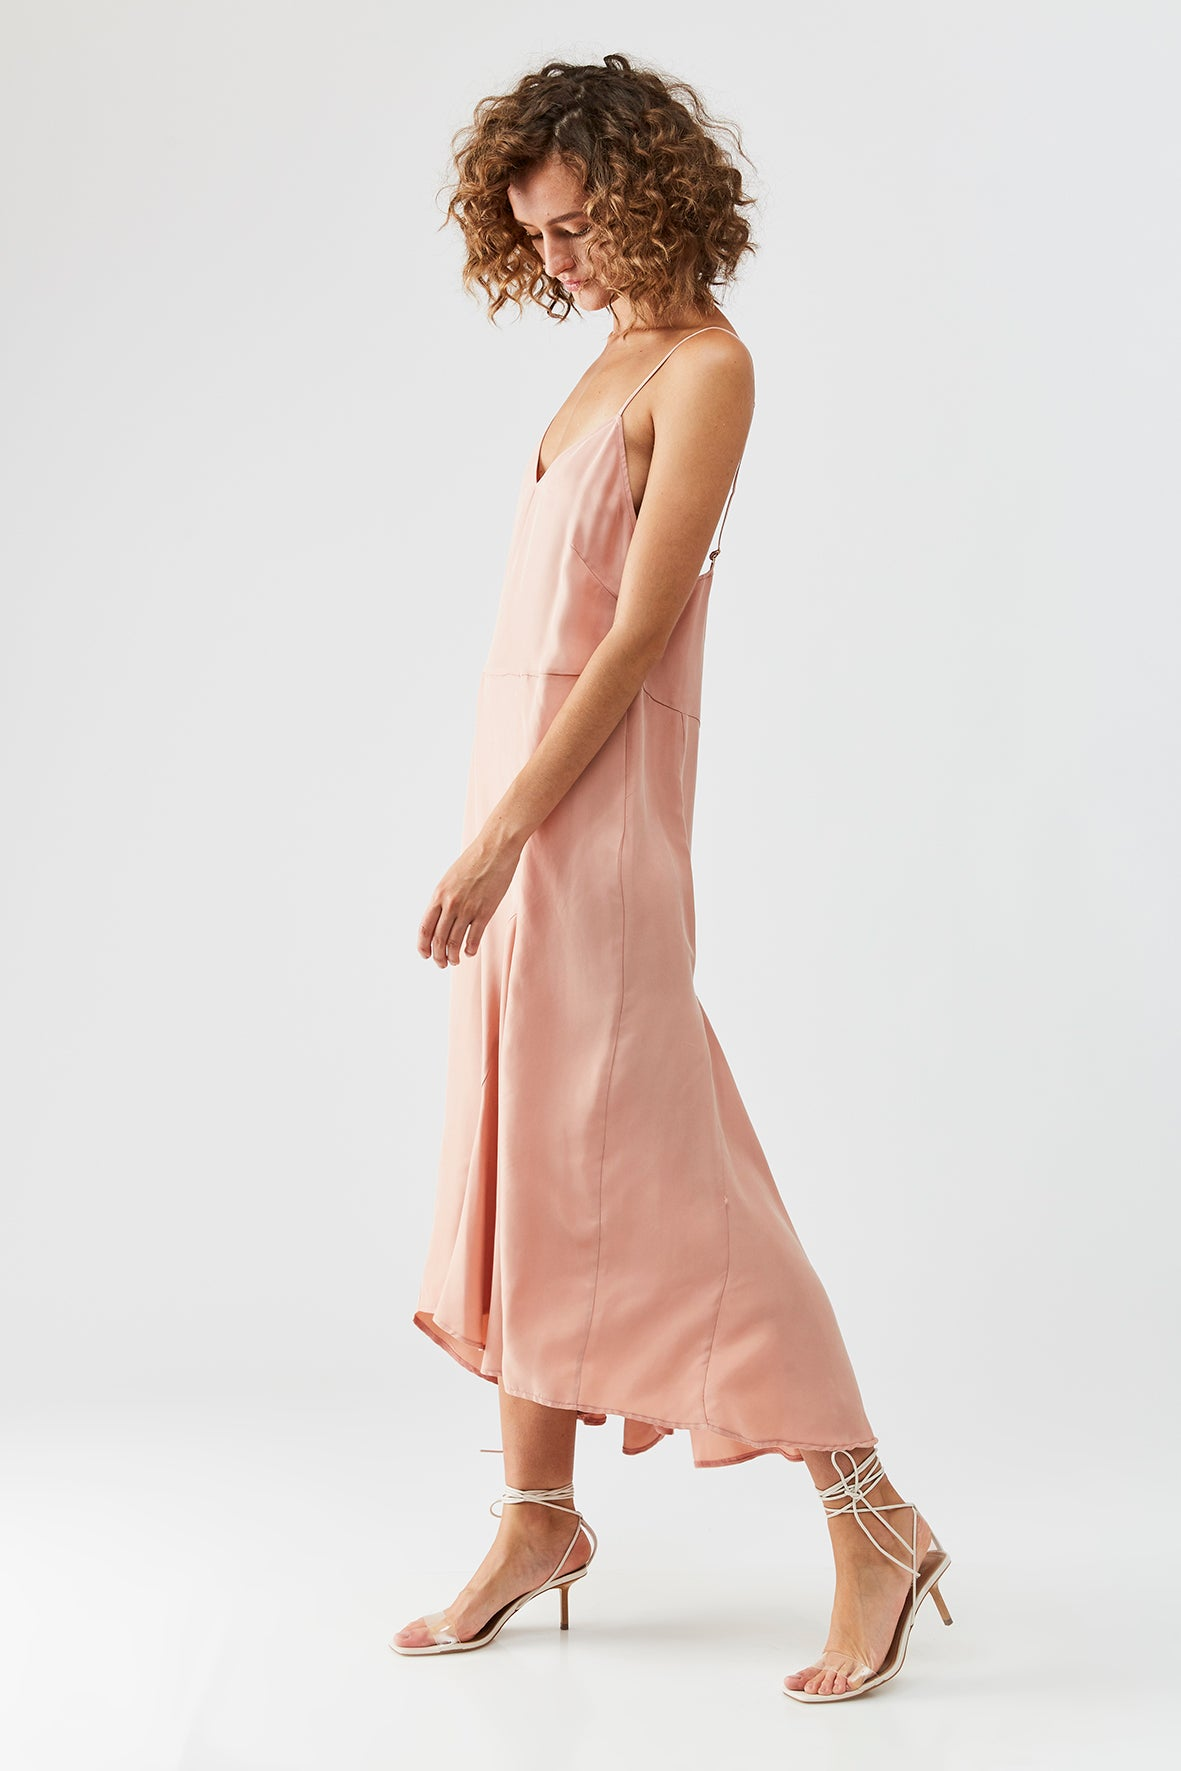 ANDA Dress Blush